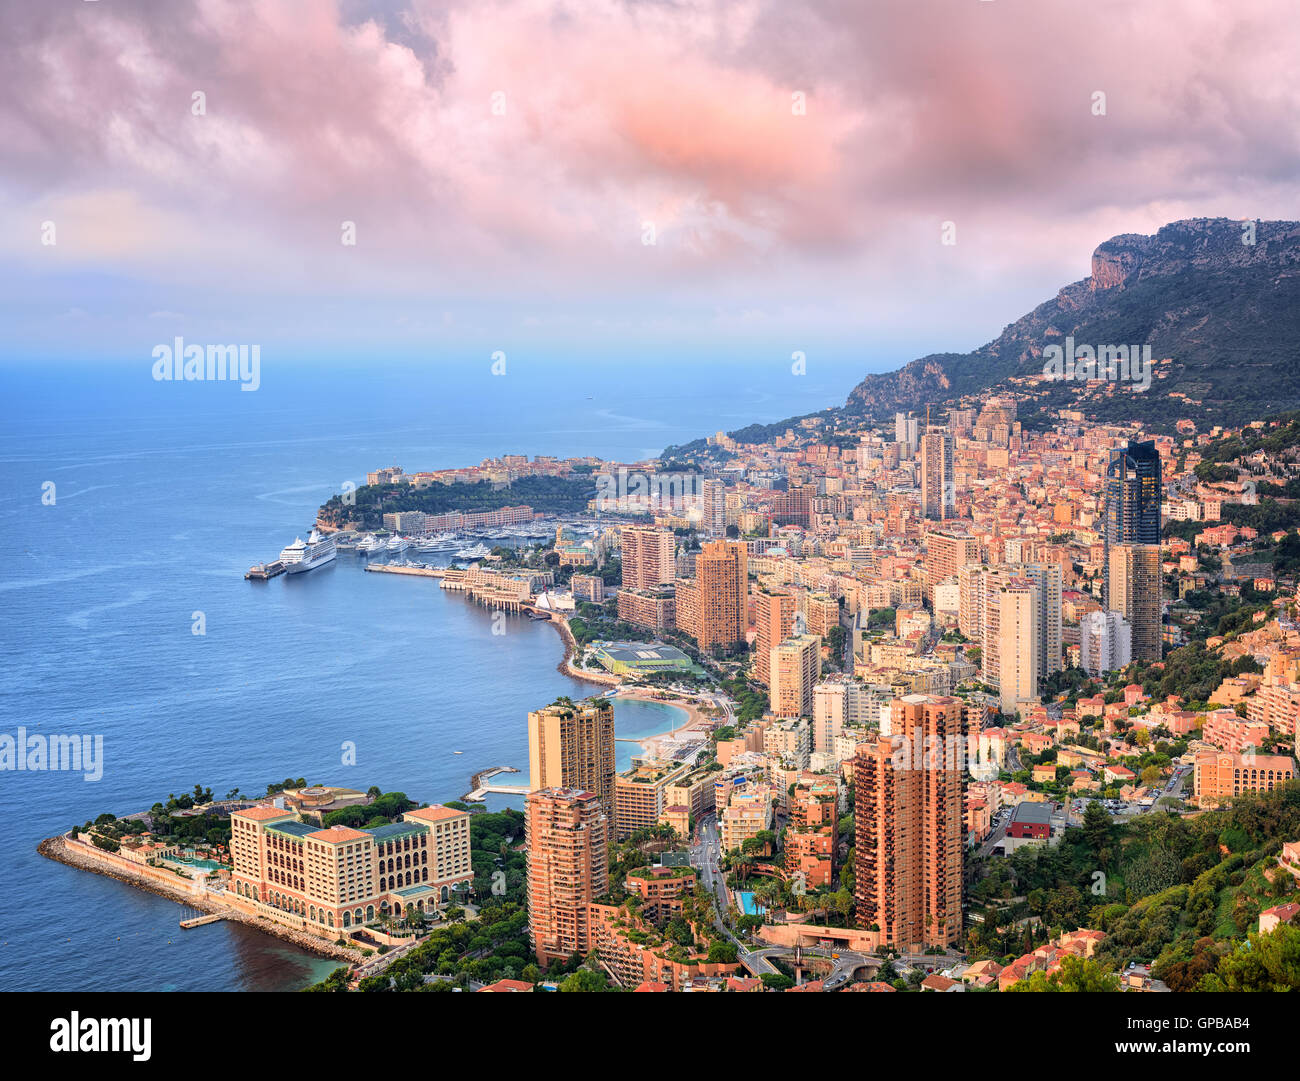 View of Principality of Monaco at sunrise - Stock Image